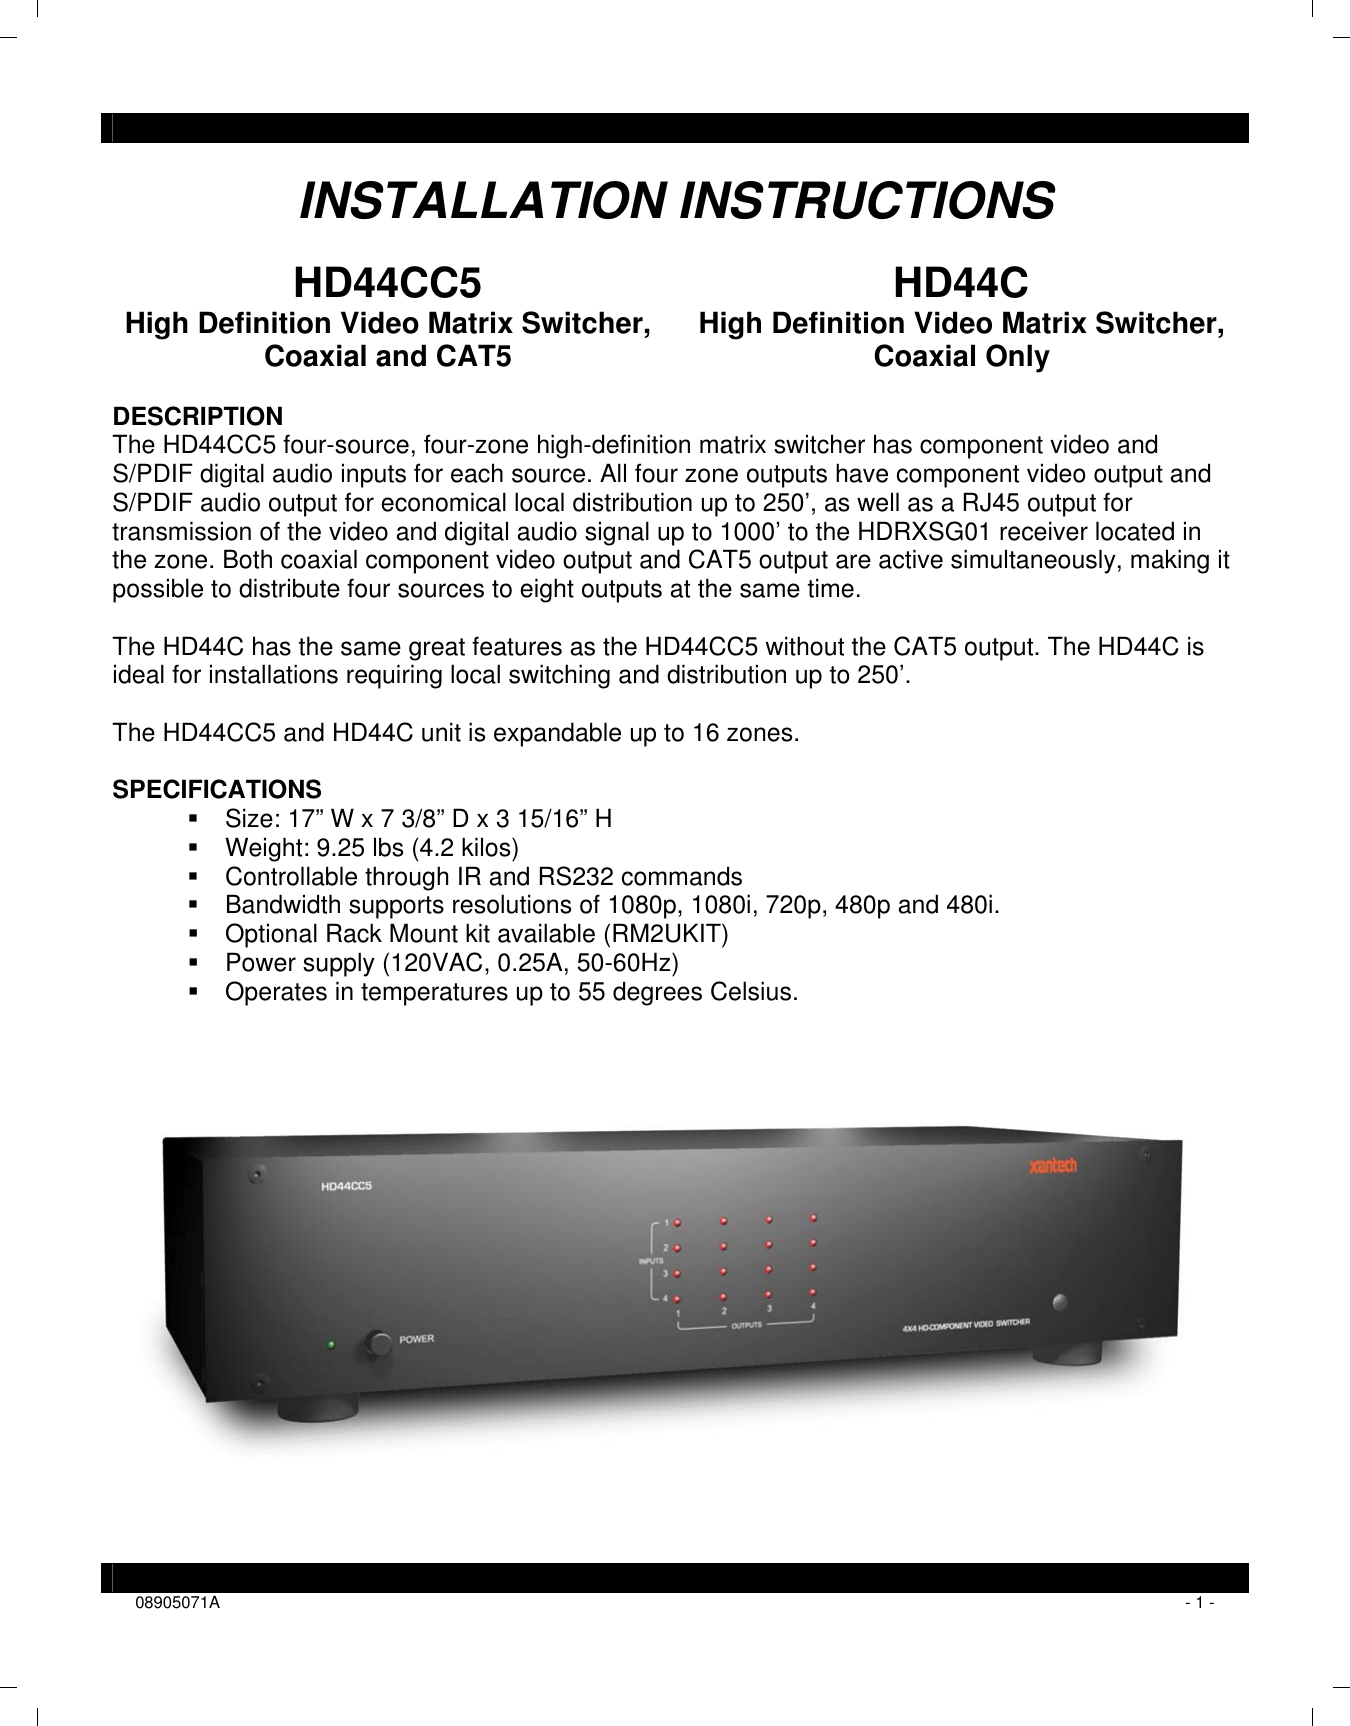 Xantech Switch Hd44C Users Manual Installation Instructions on electrical switch wiring diagram, splice in a light switch diagram, bedroom diagram,